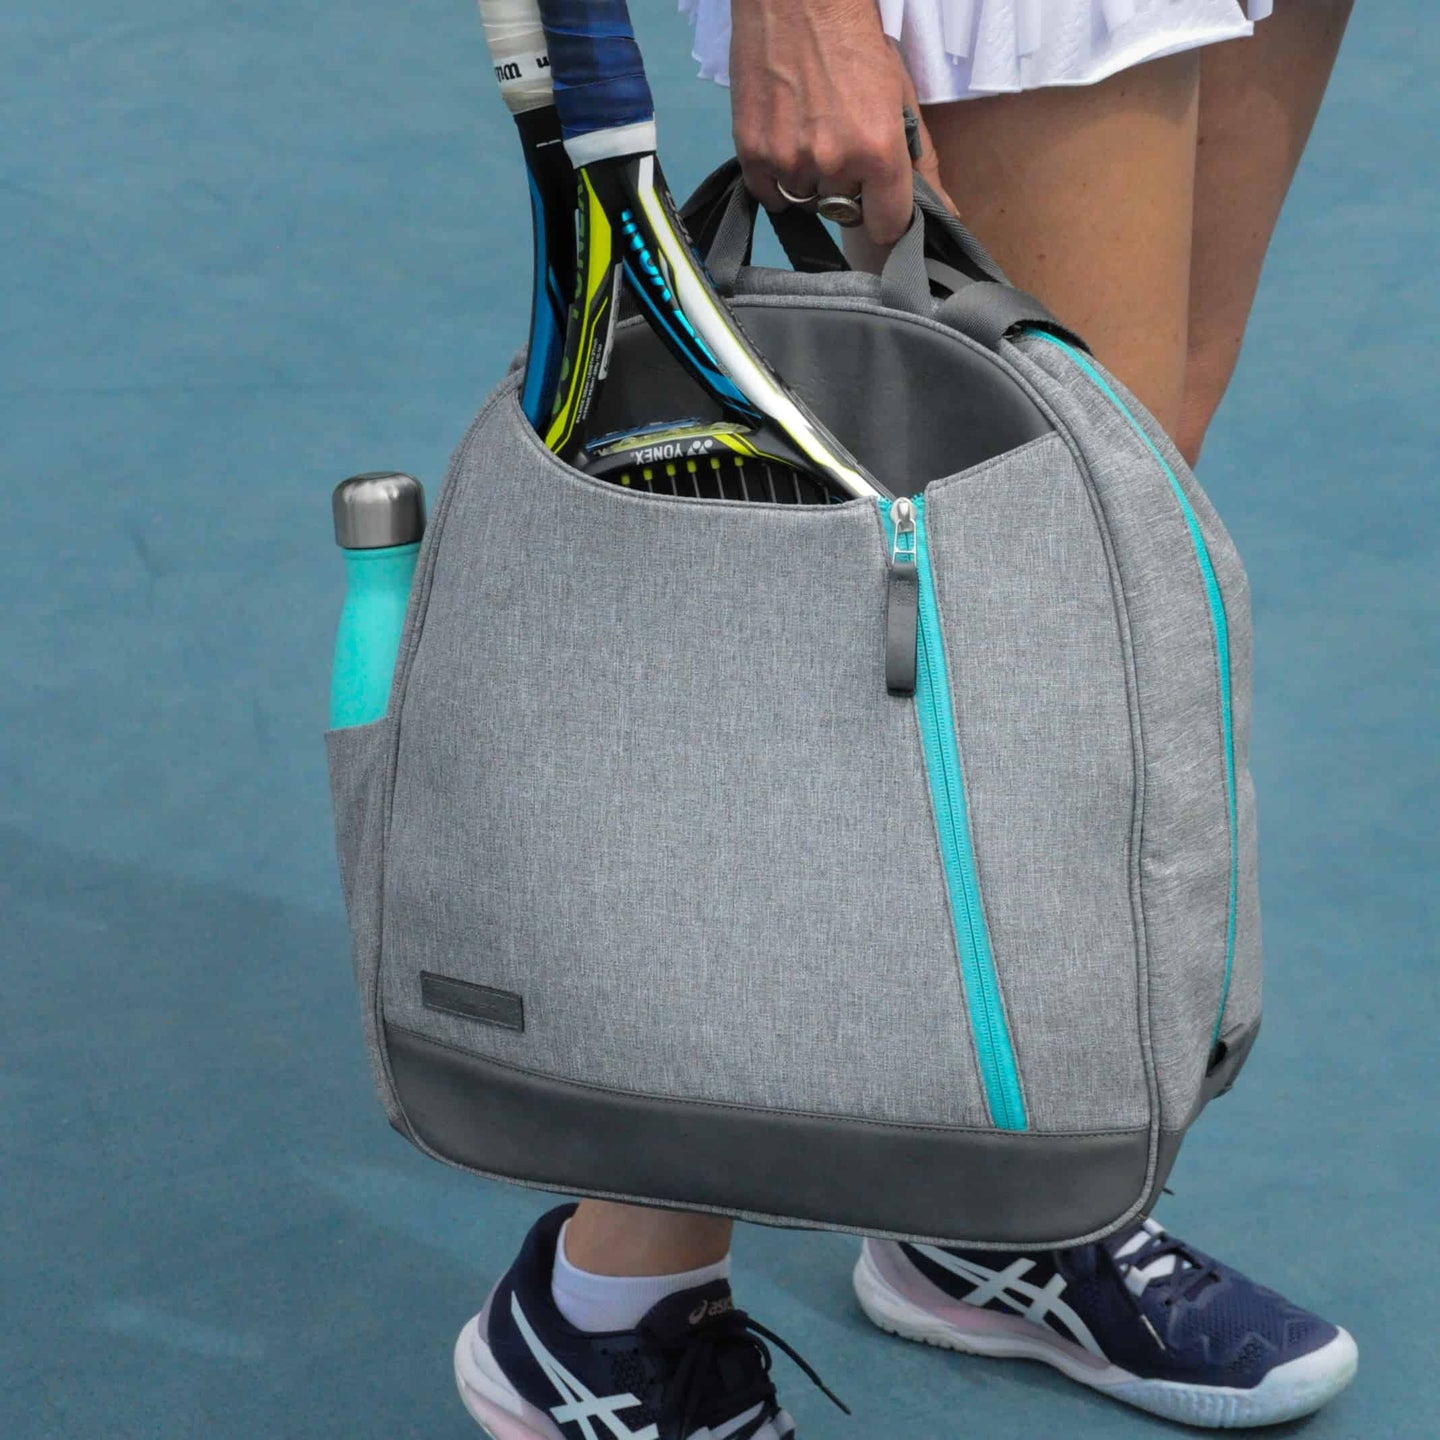 Woman on a tennis court carrying a heathered grey Doubletake backpack.